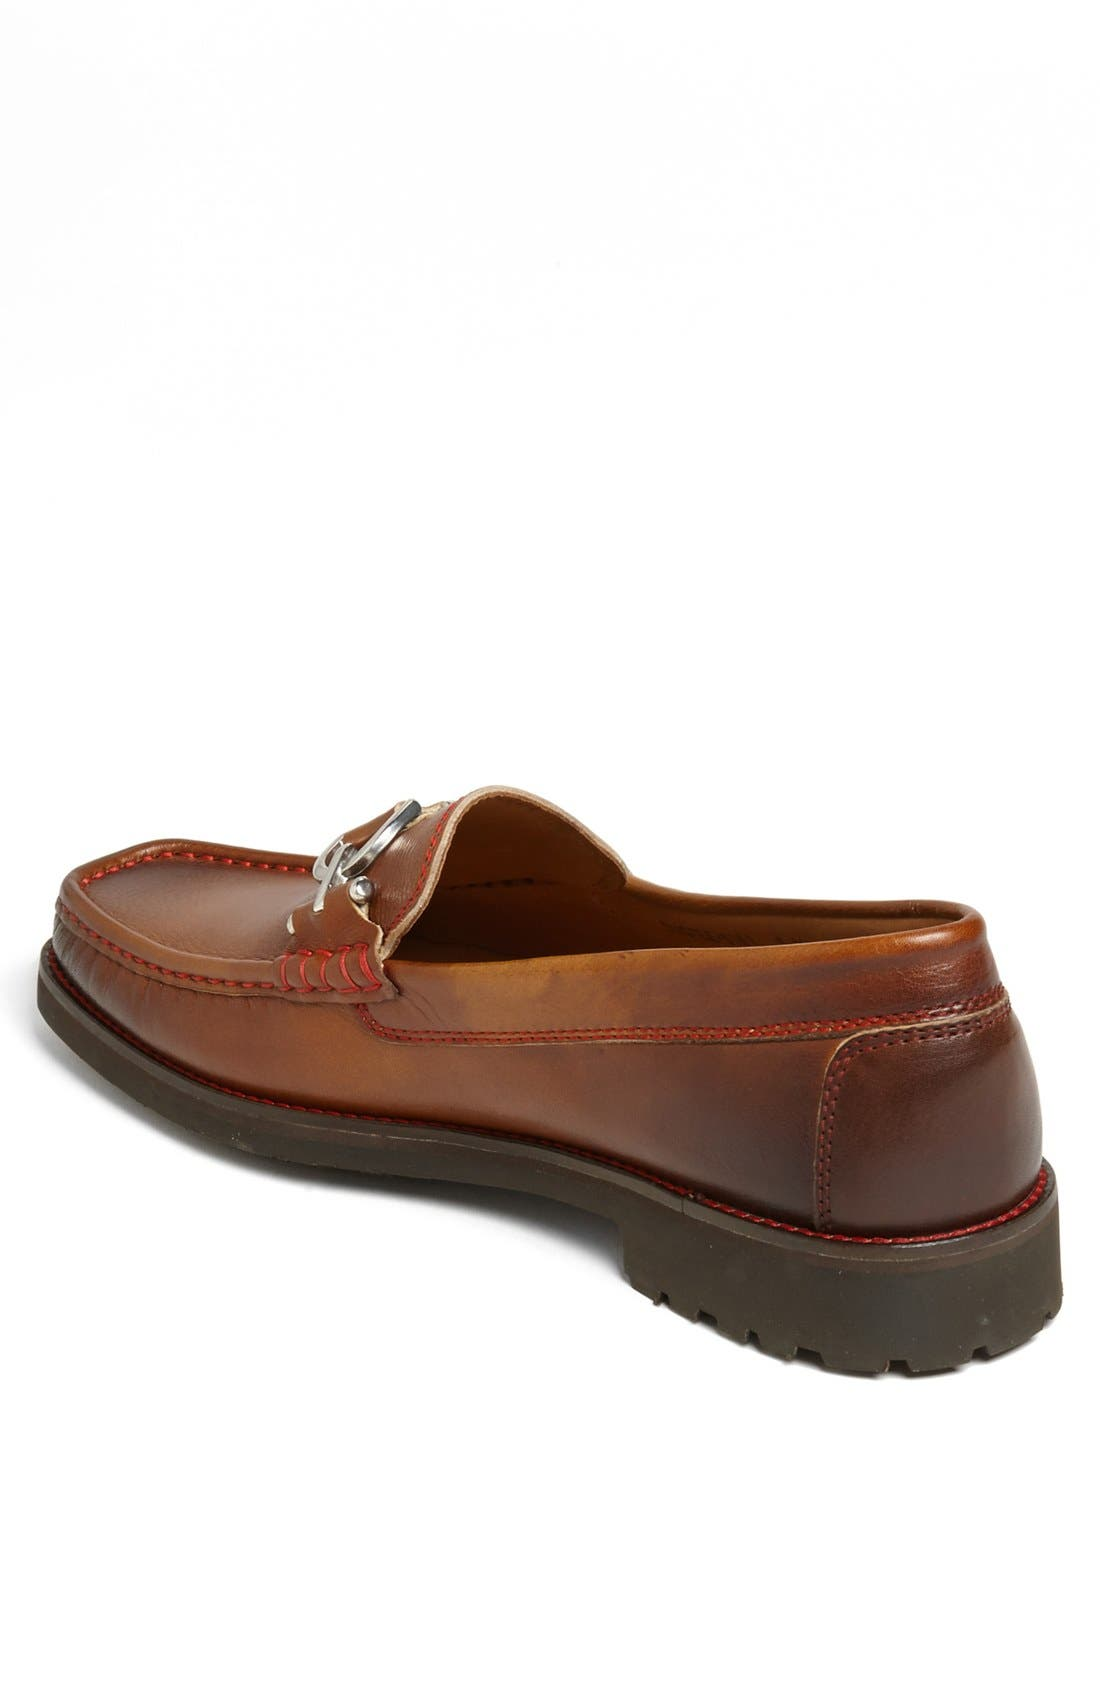 Alternate Image 2  - Donald J Pliner 'Dustee' Bit Loafer